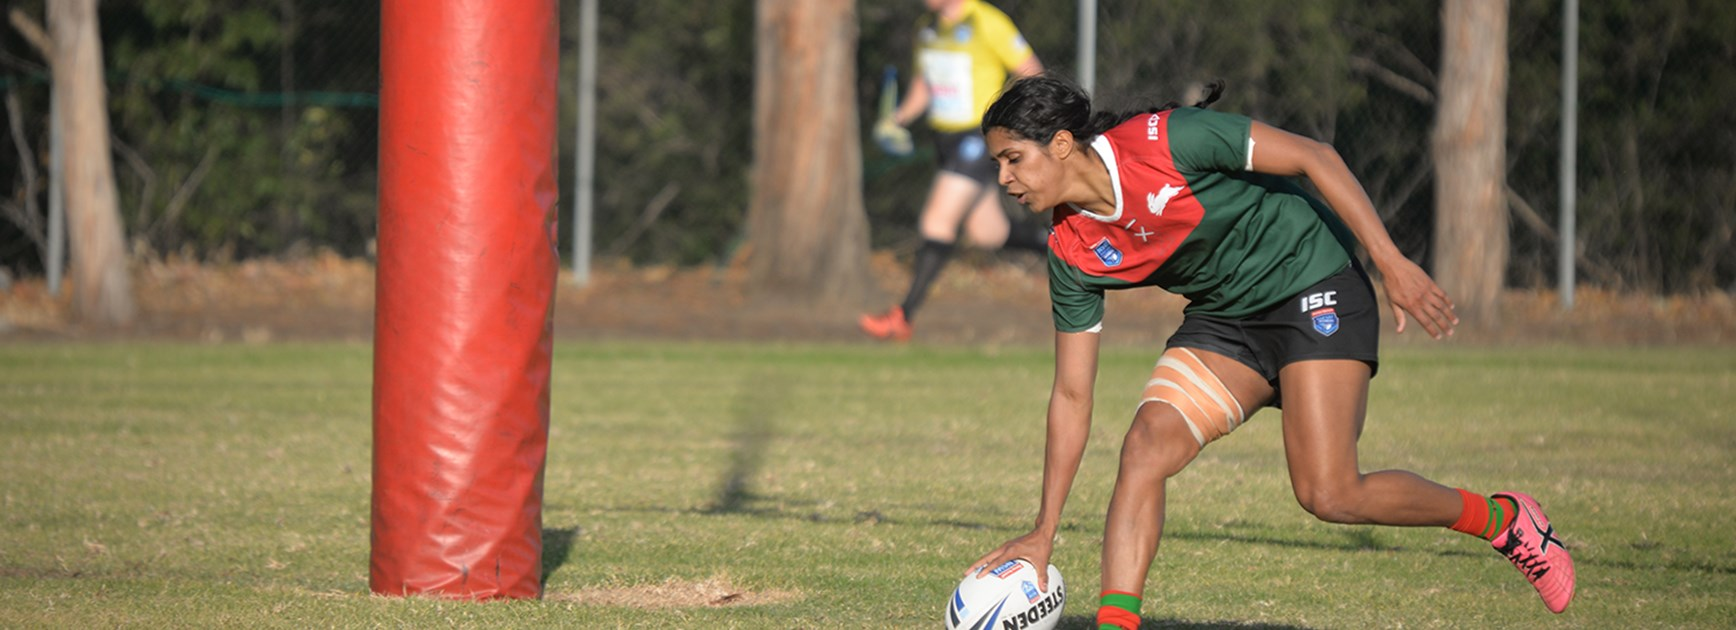 Rabbitohs backs star in big win over Magpies